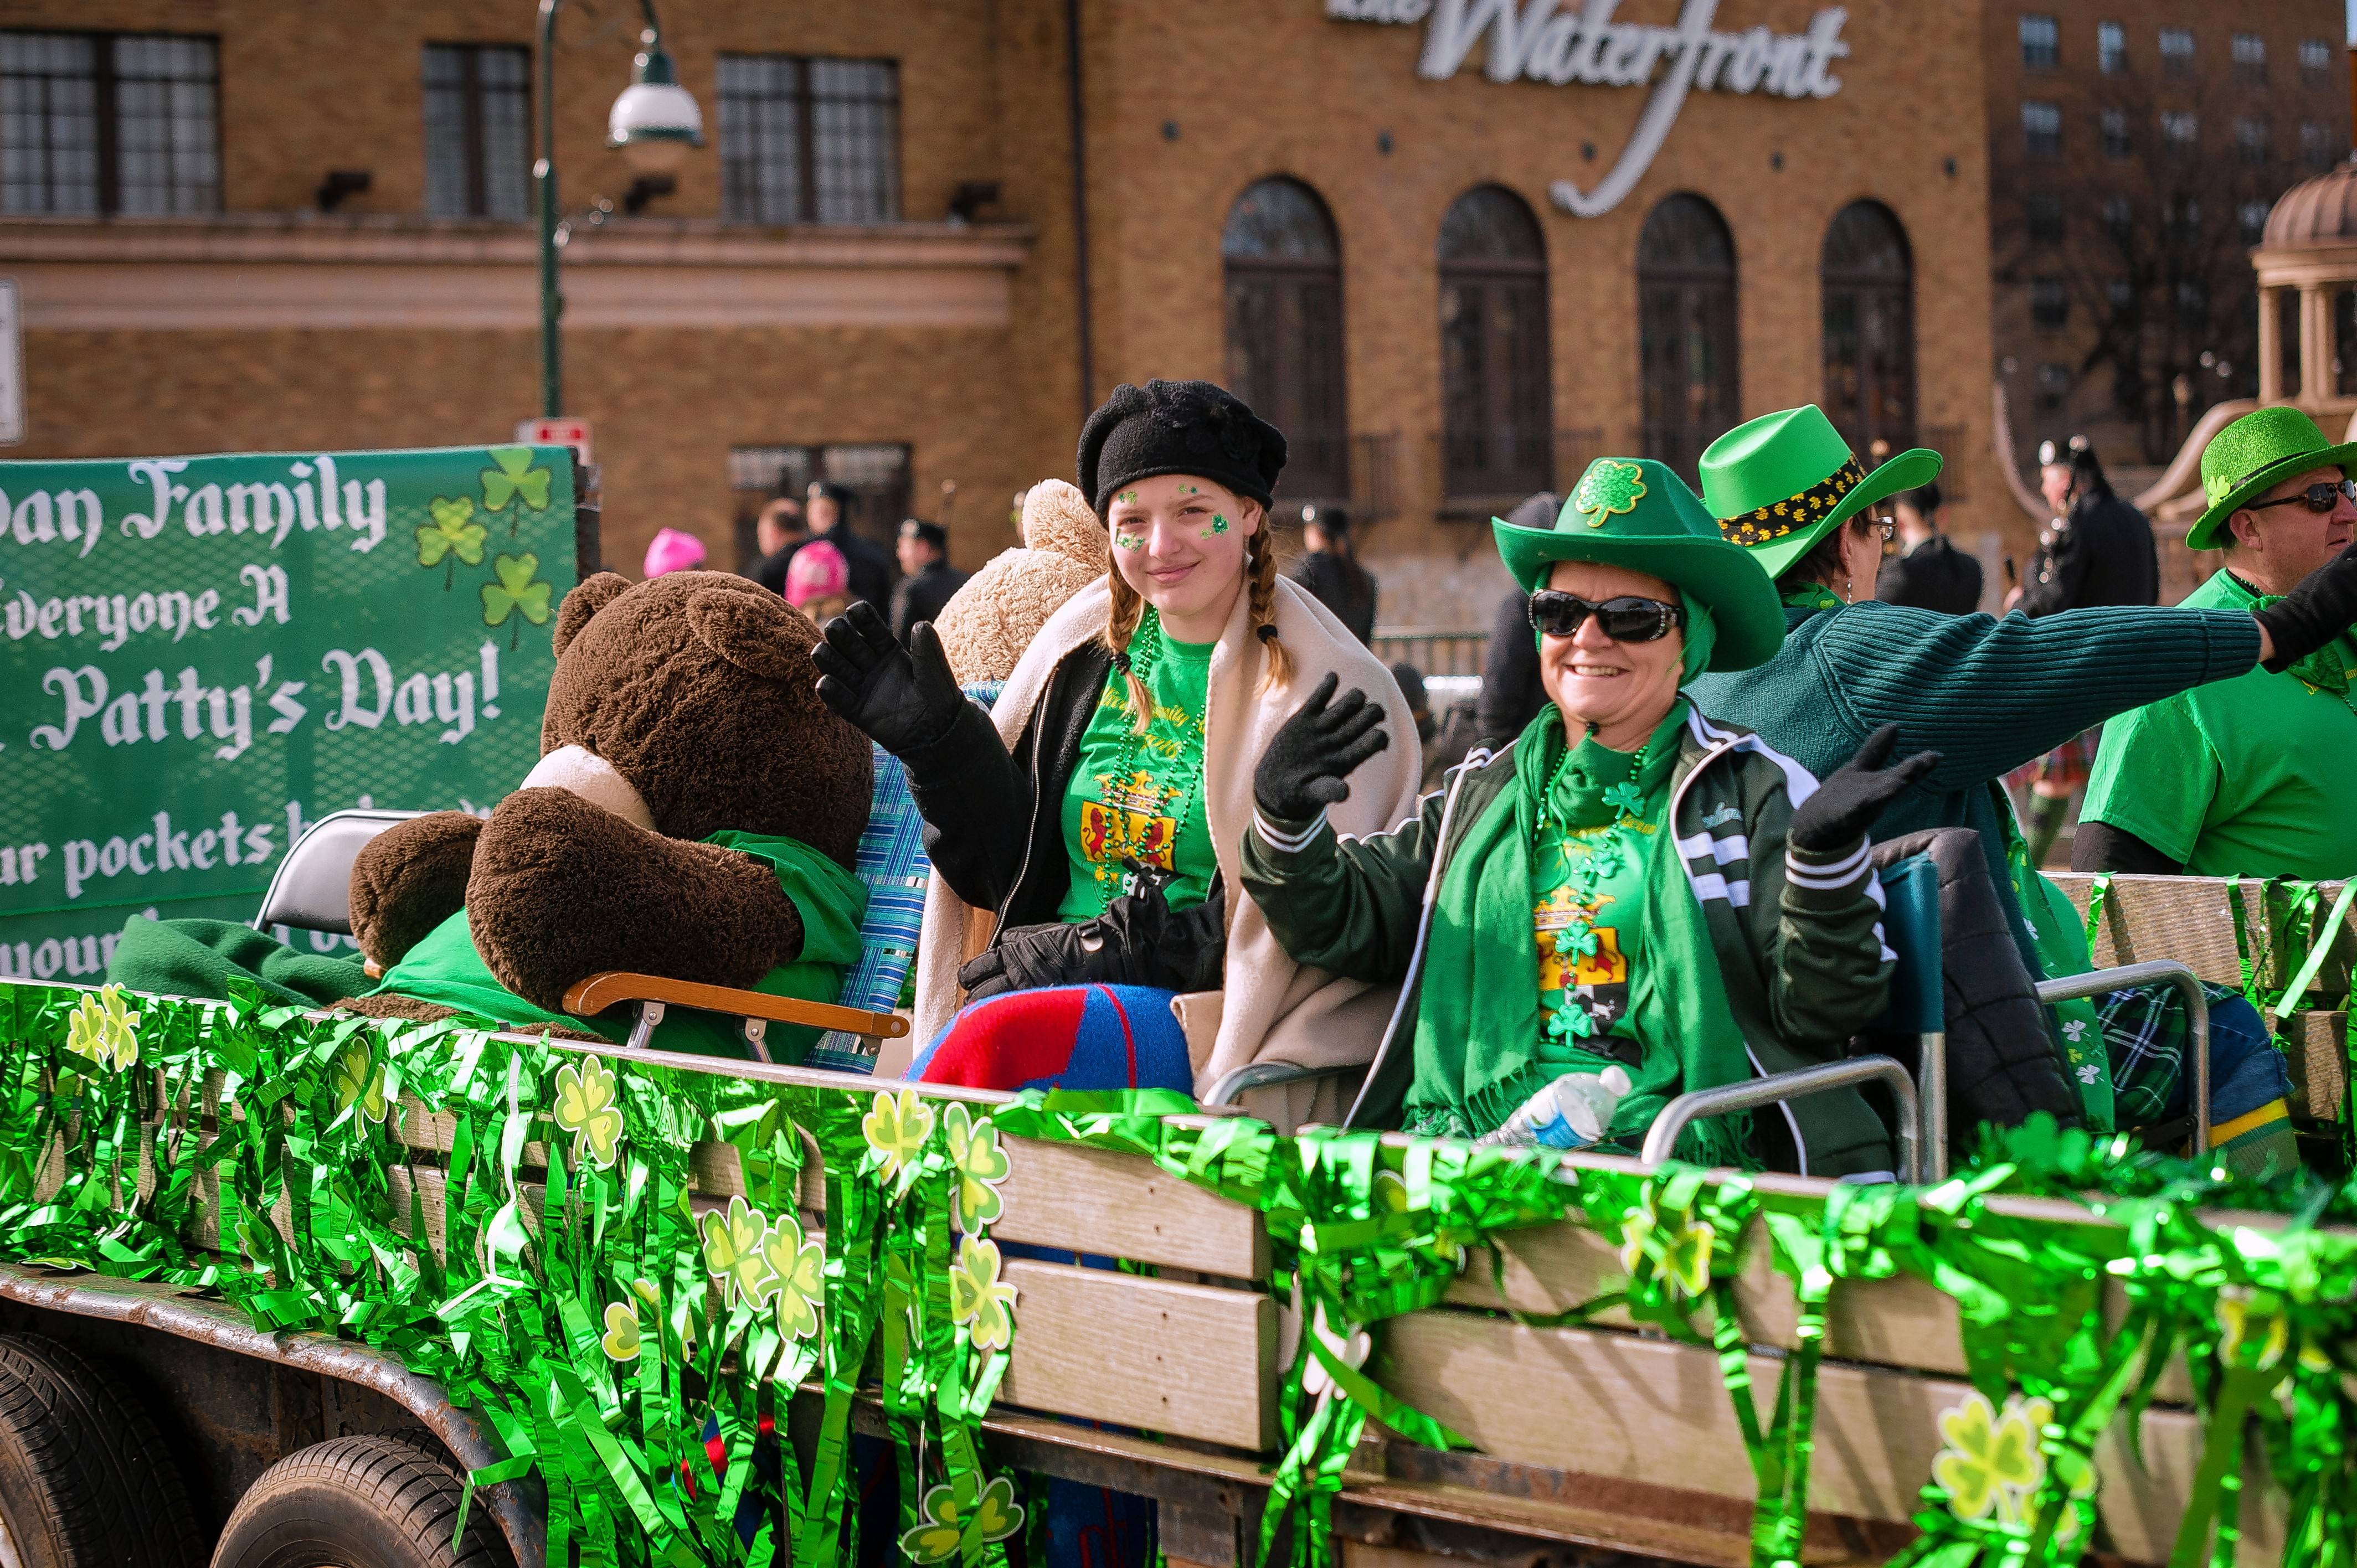 The St. Charles St. Patrick's Parade is on Saturday, March 10.